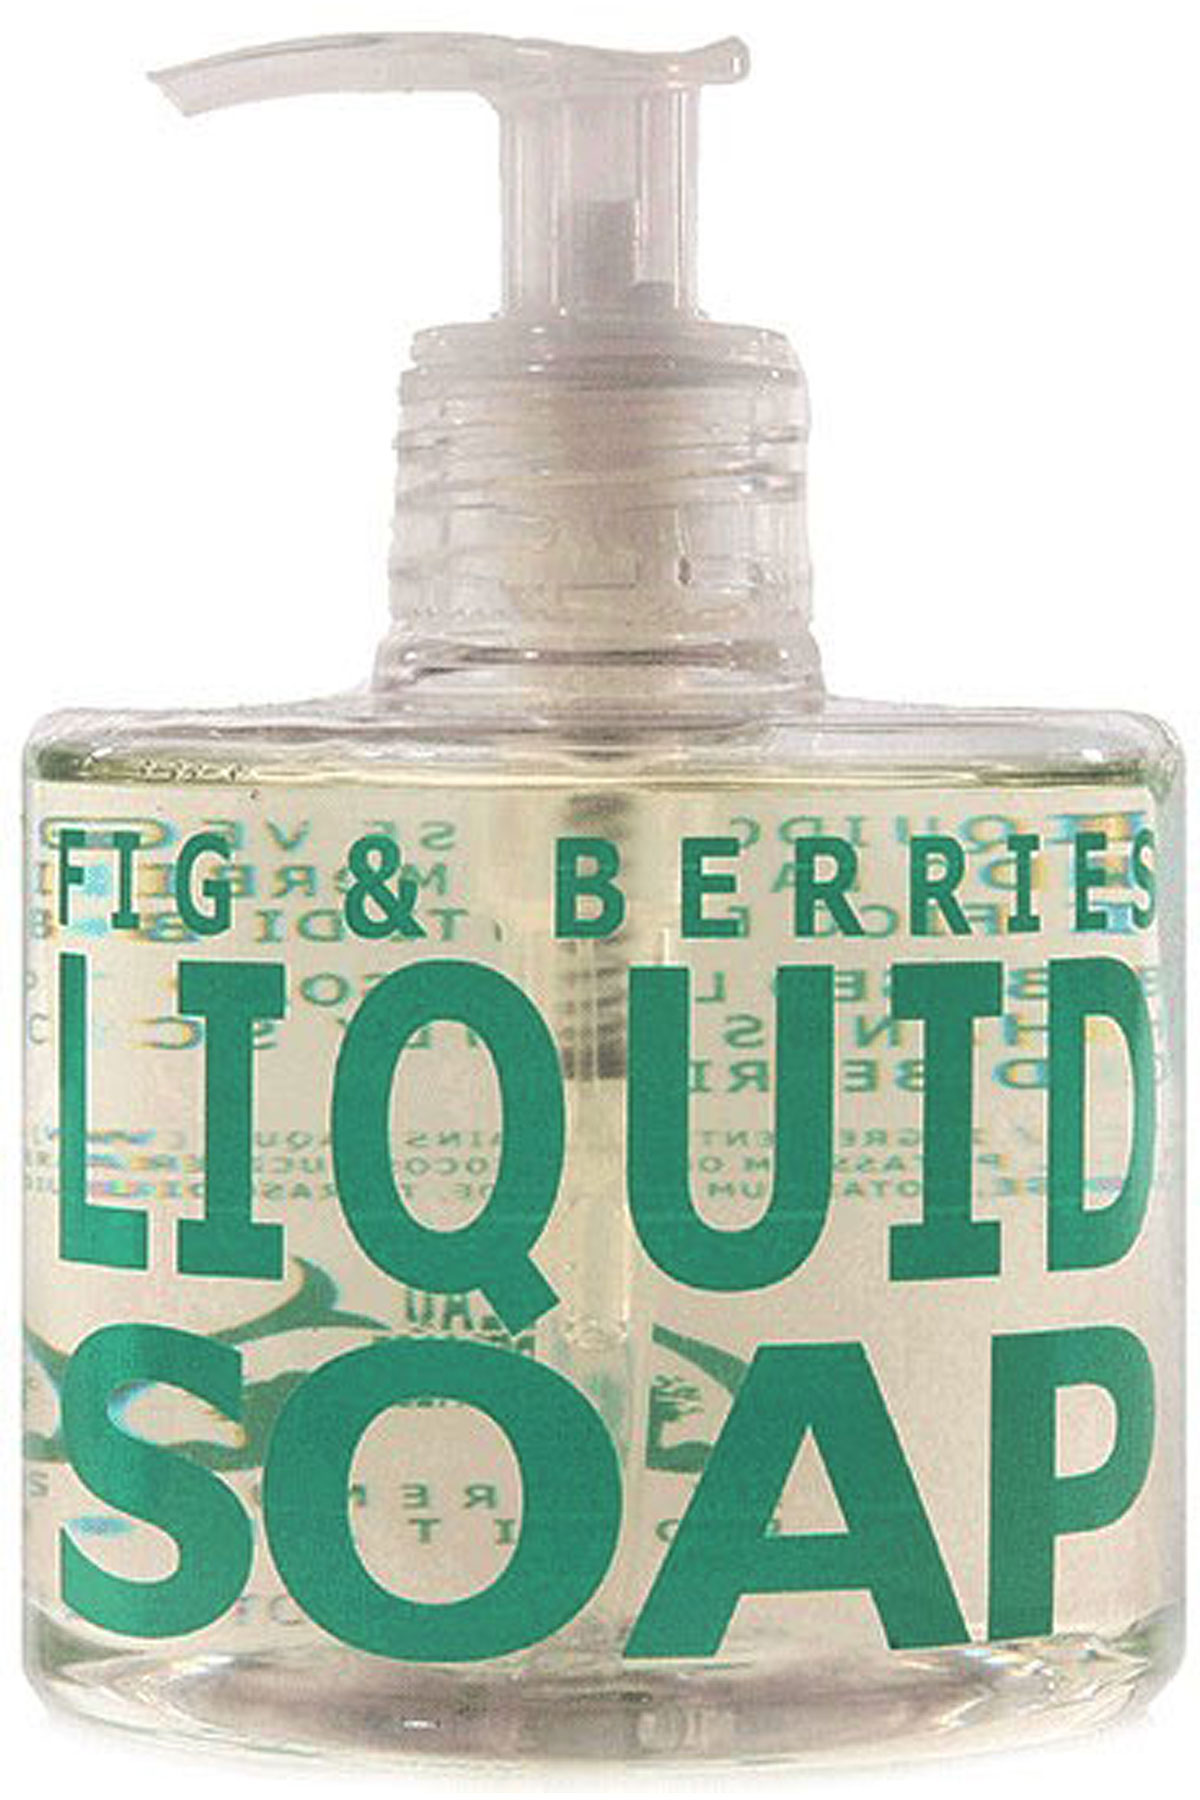 Eau D Italie Beauty for Men, Fig And Berries - Liquid Soap - 300 Ml, 2019, 300 ml